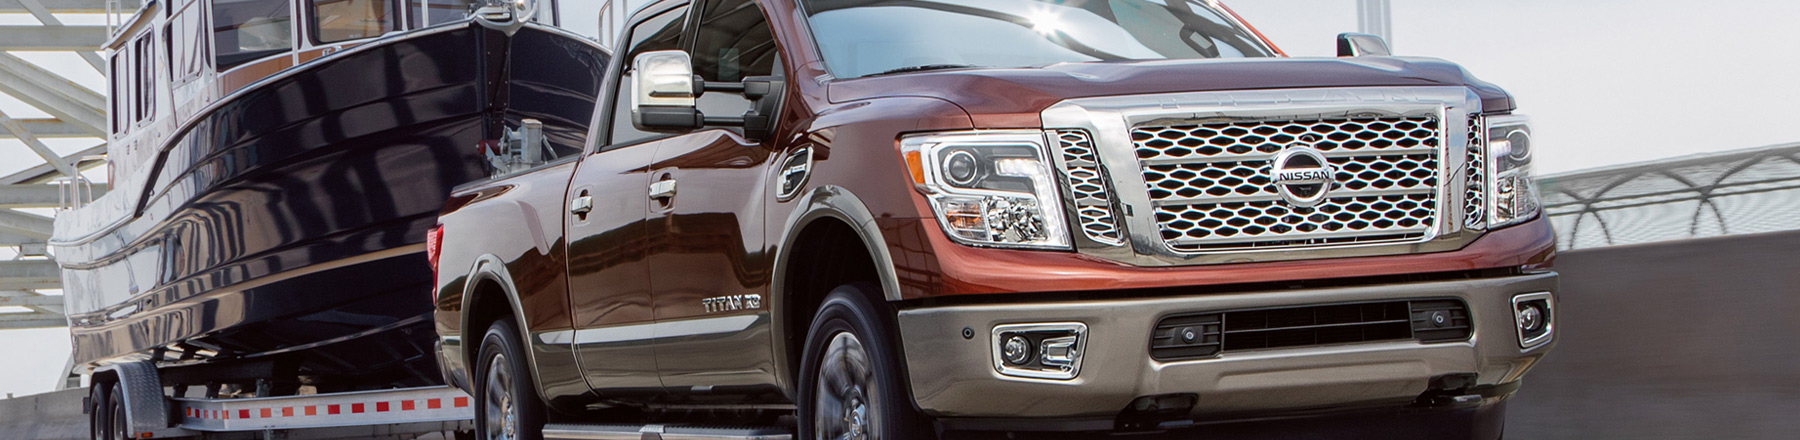 2016 Nissan Titan model in Calgary, AB